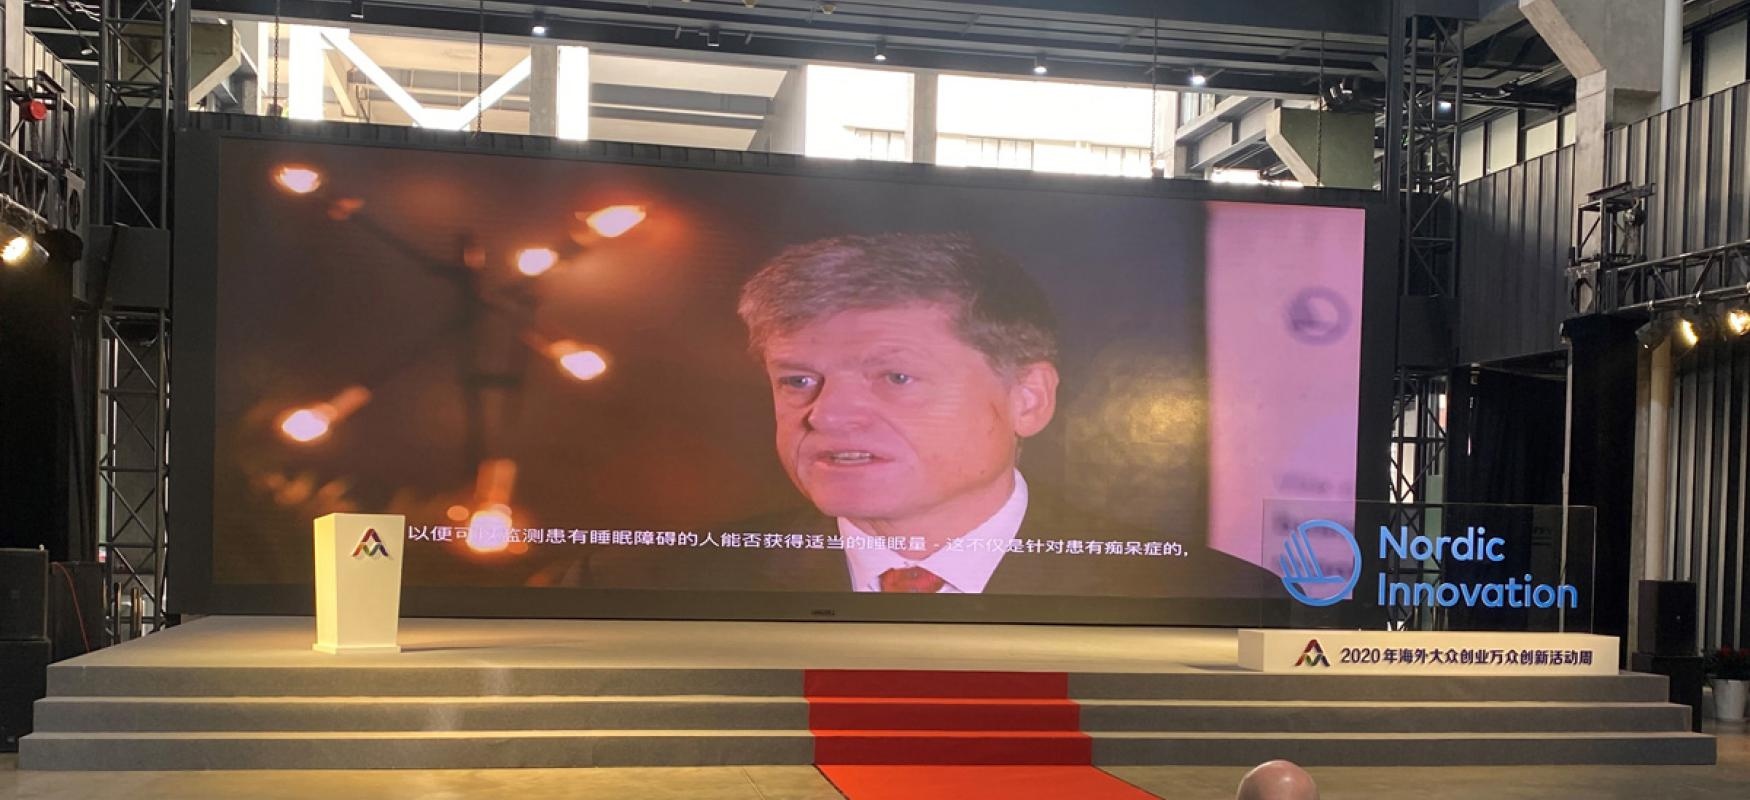 Video of Svein Berg shown at a big screen at the Chinese online conference